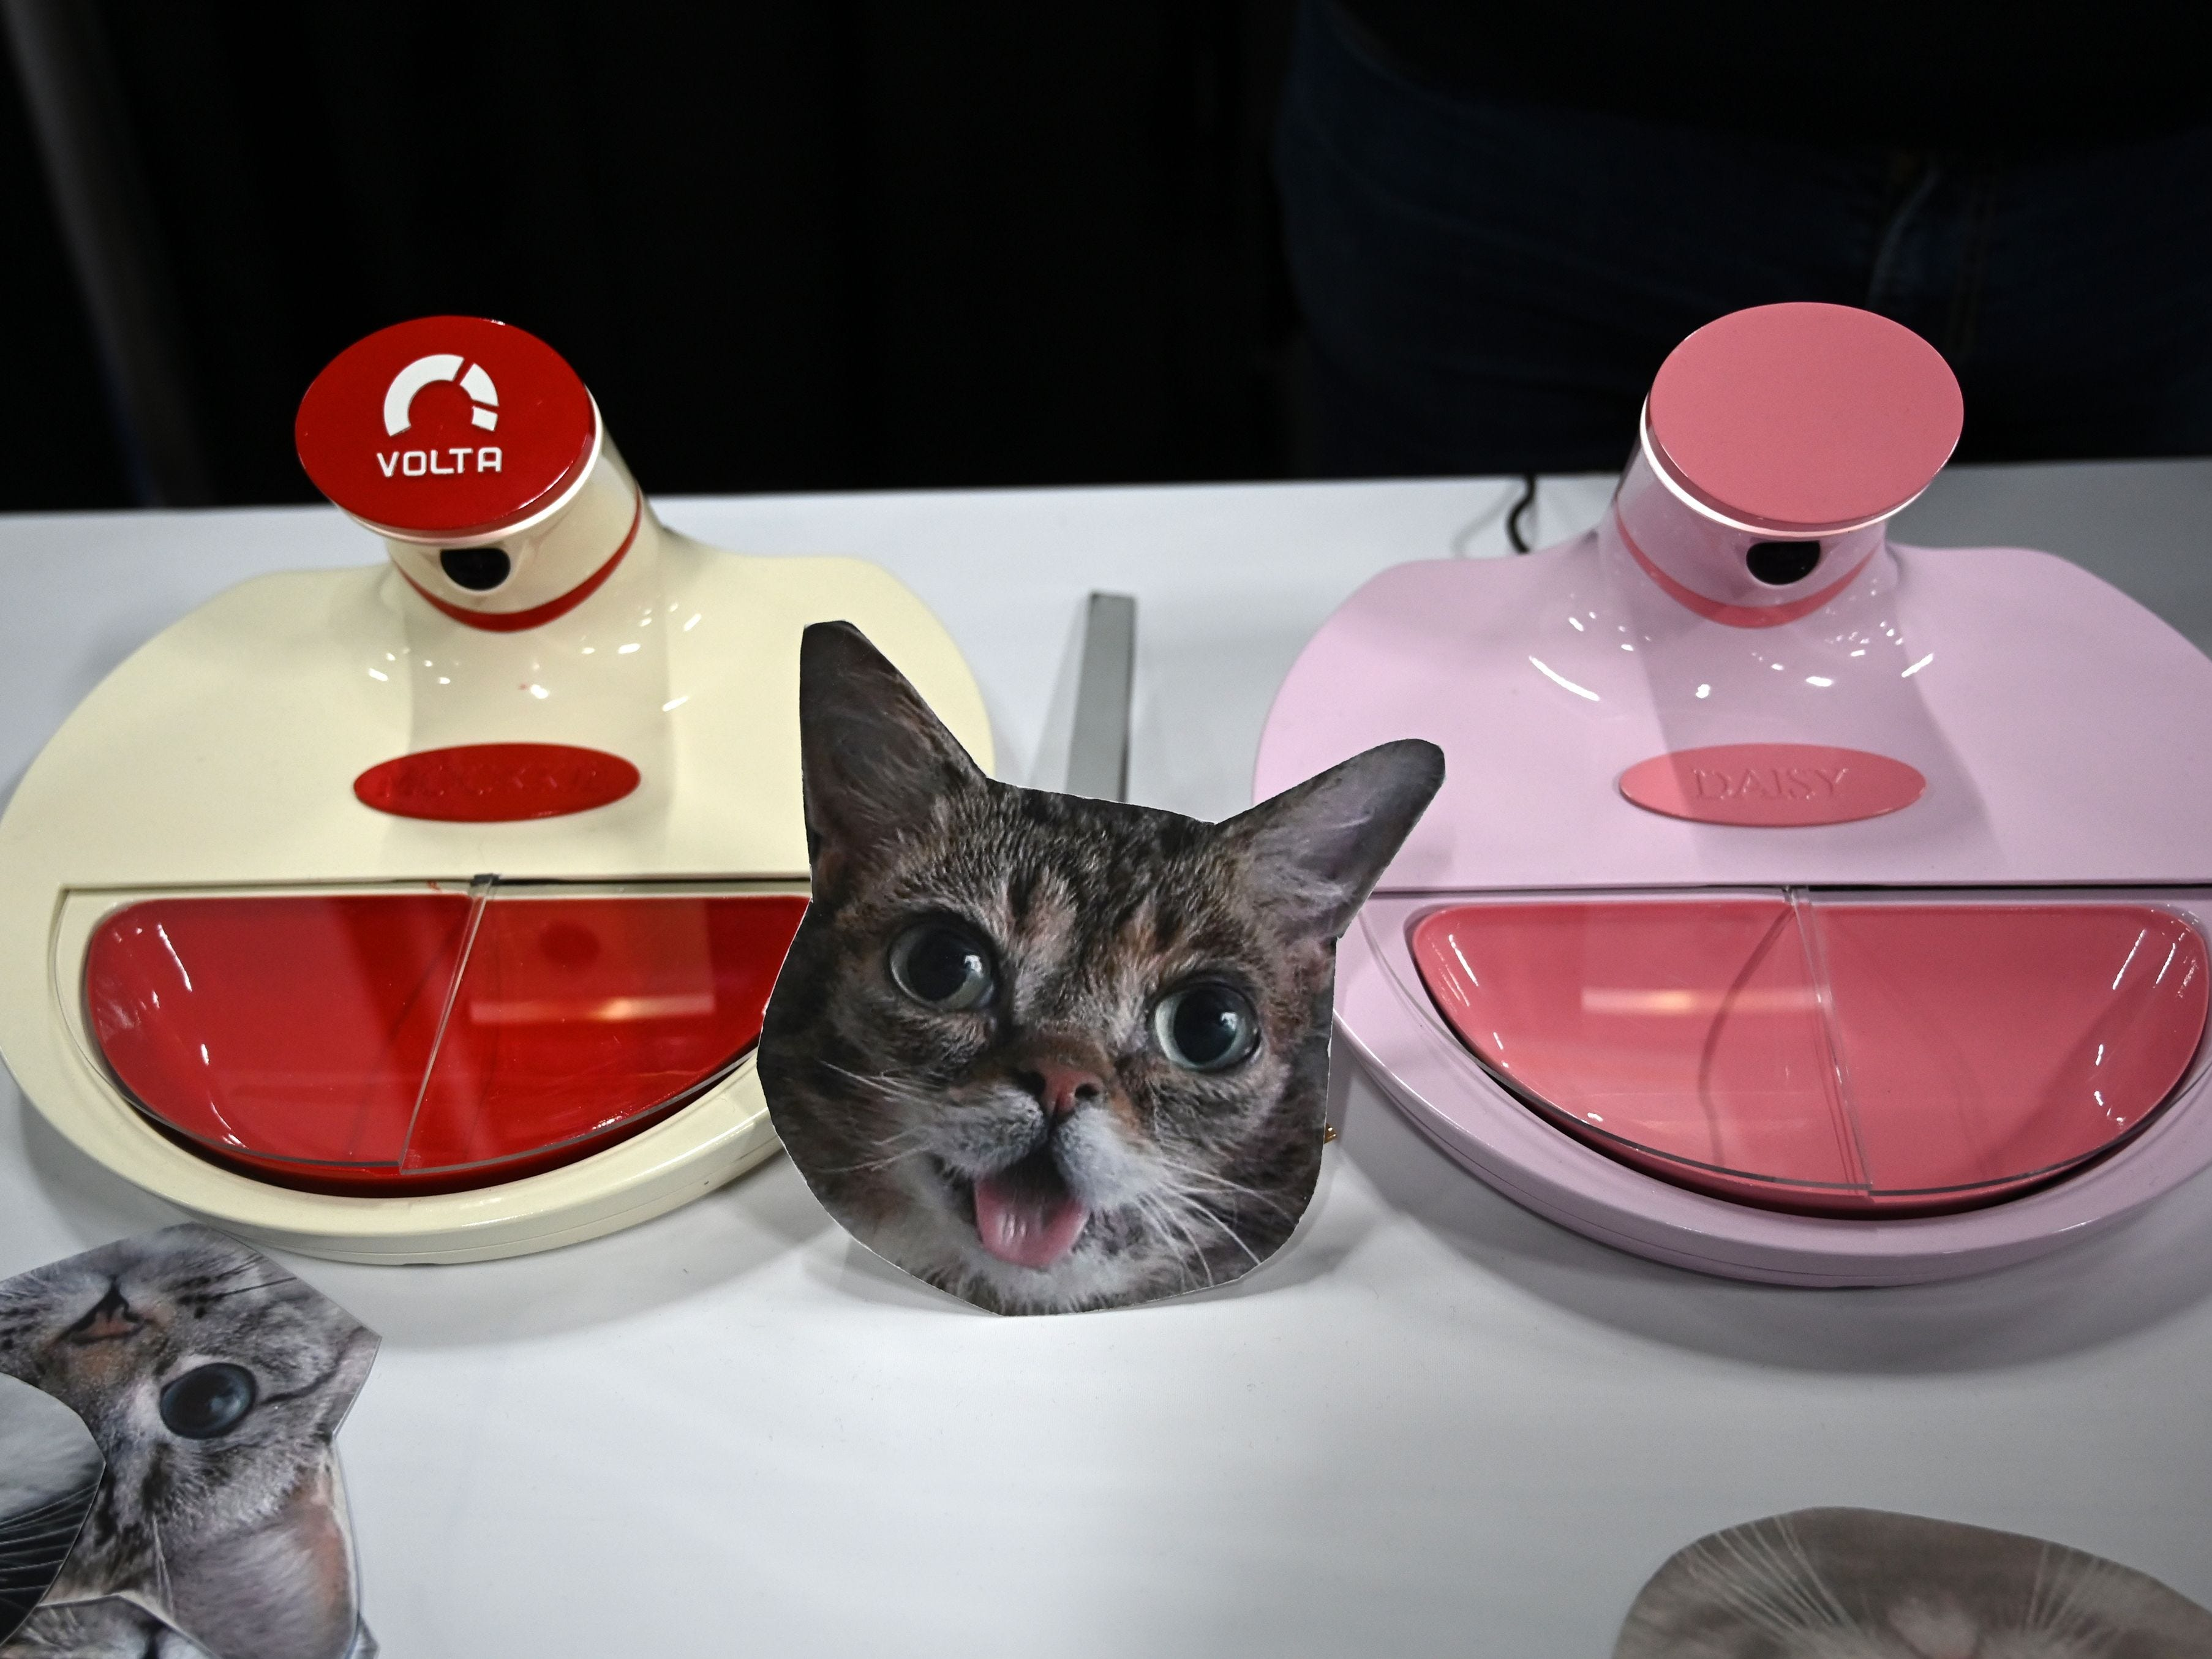 This is a Mookkie, a smart pet feeder which recognizes individual animals.